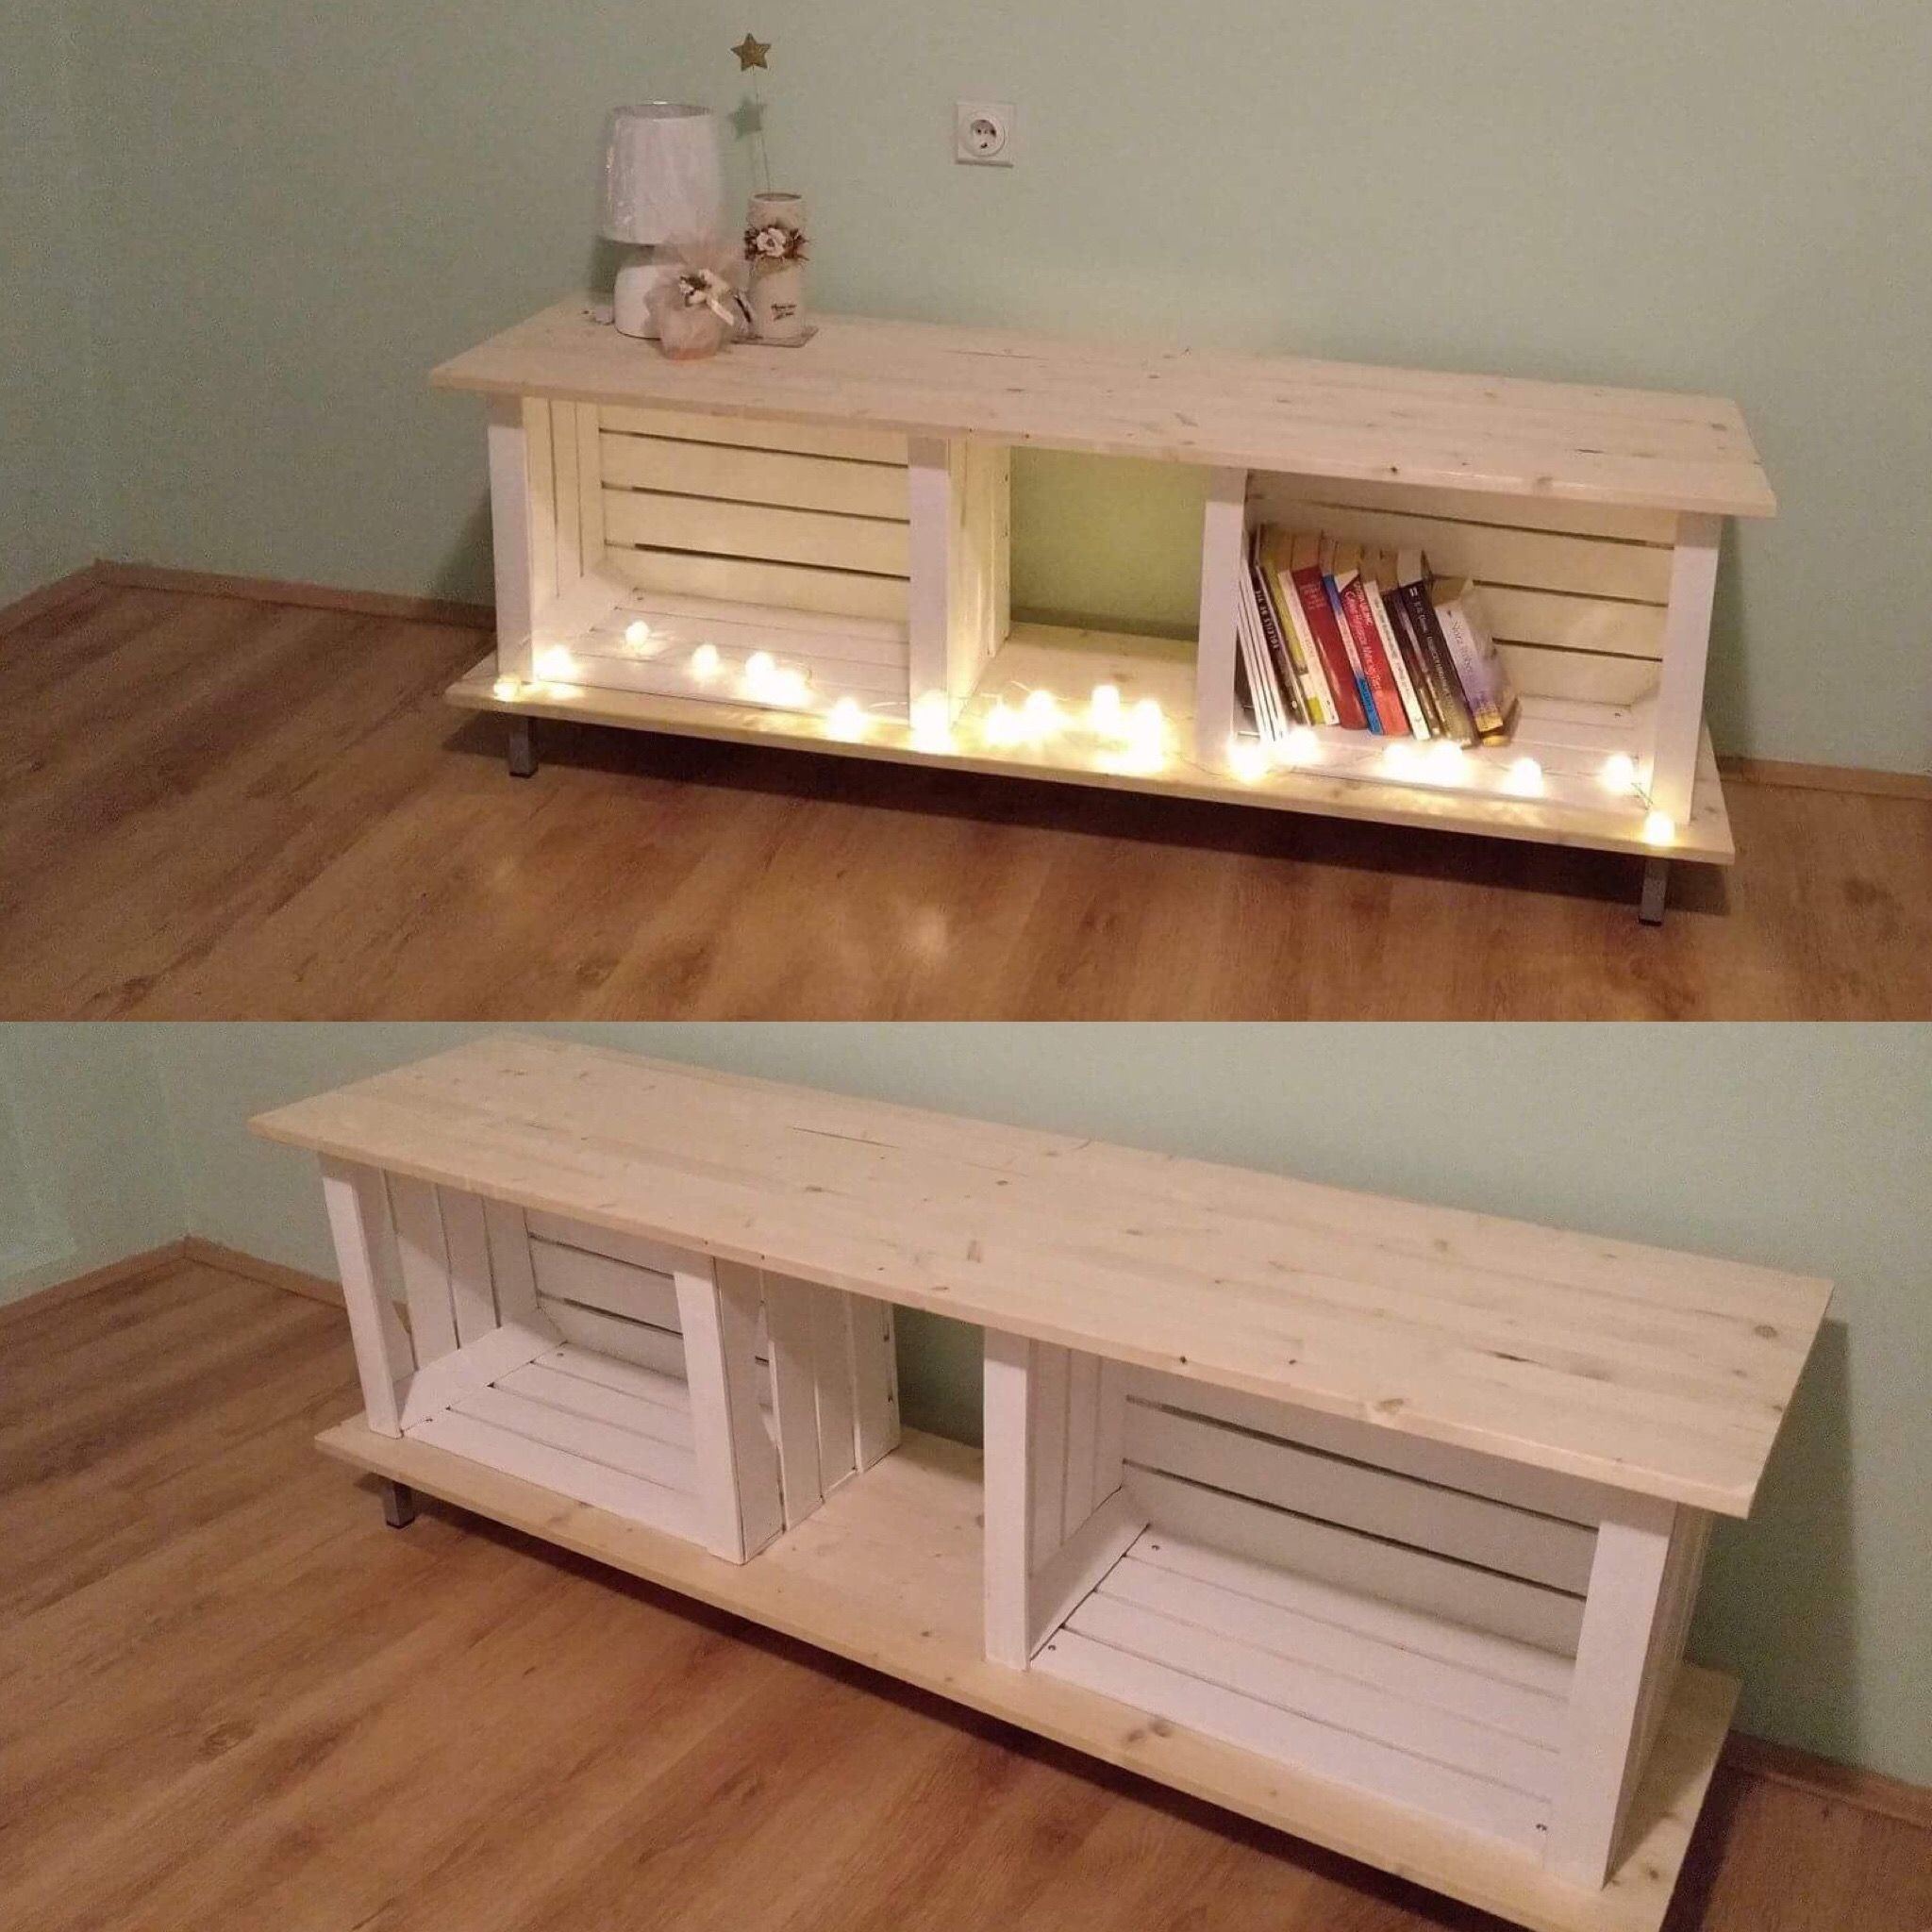 Our First Diy Project Wooden Crates Pinterest Inspired Tv Stand  # Meuble Tv En Cagette